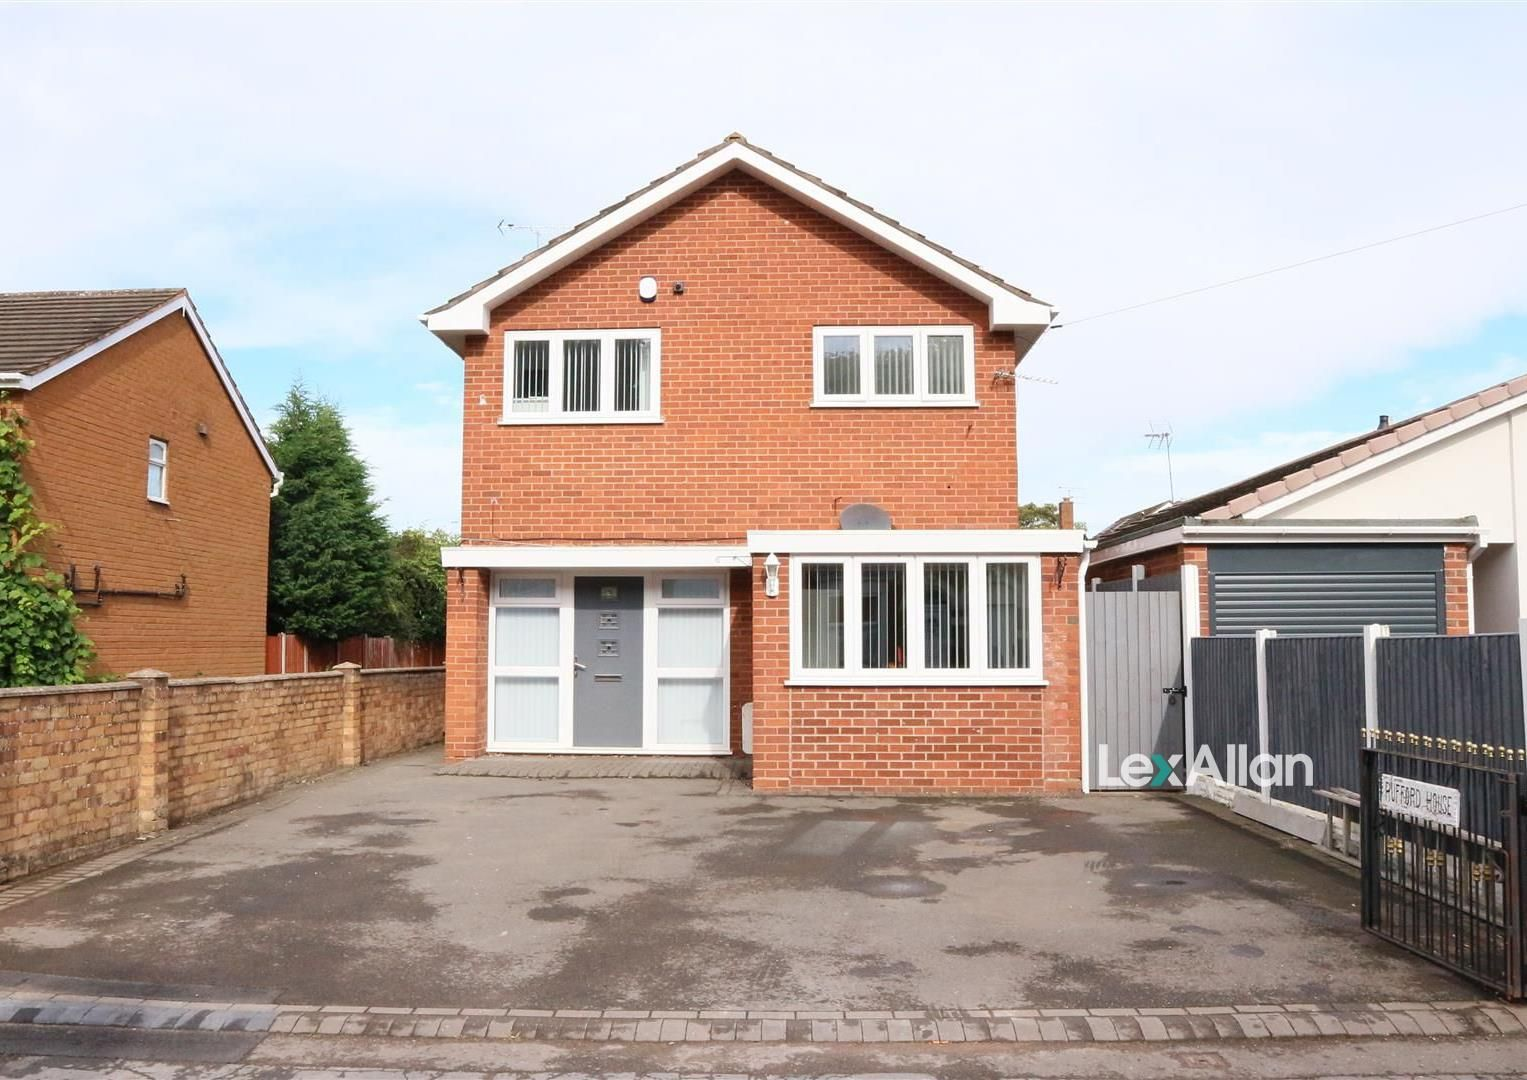 6 bed detached for sale, DY6